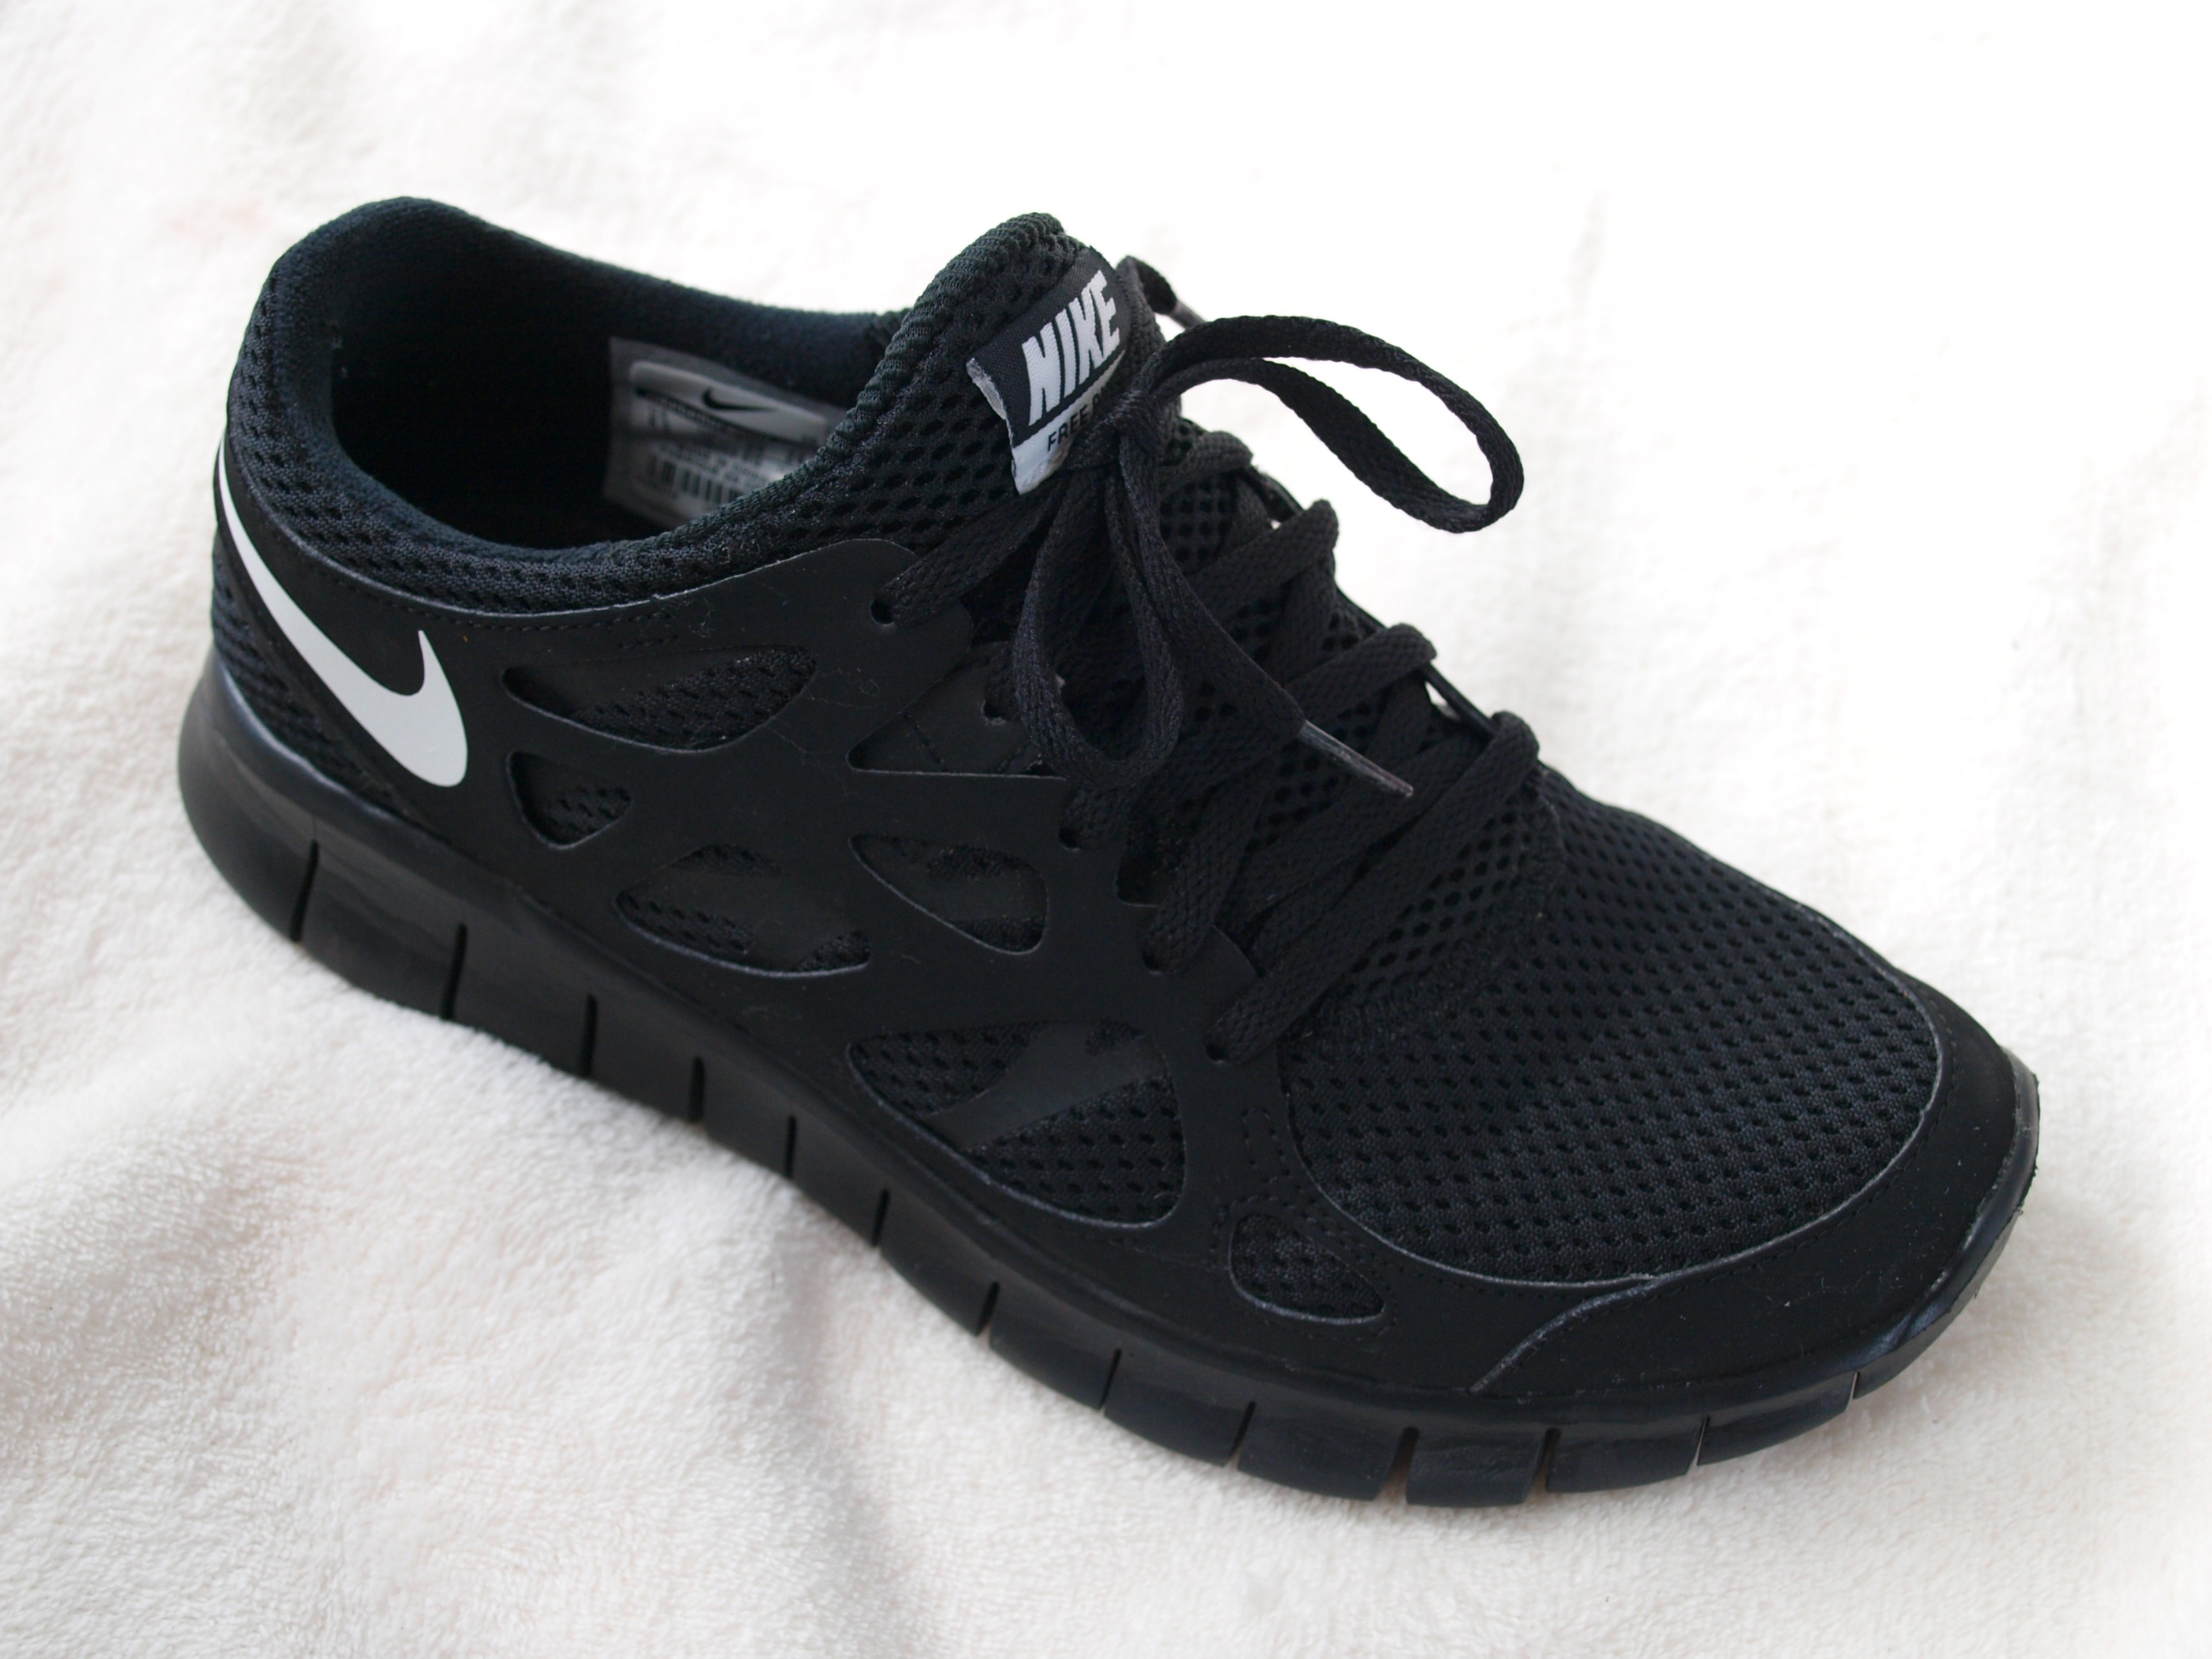 Wv4obp Nike Free 3.0 All Black Discount Nike Free Run 2 All Black